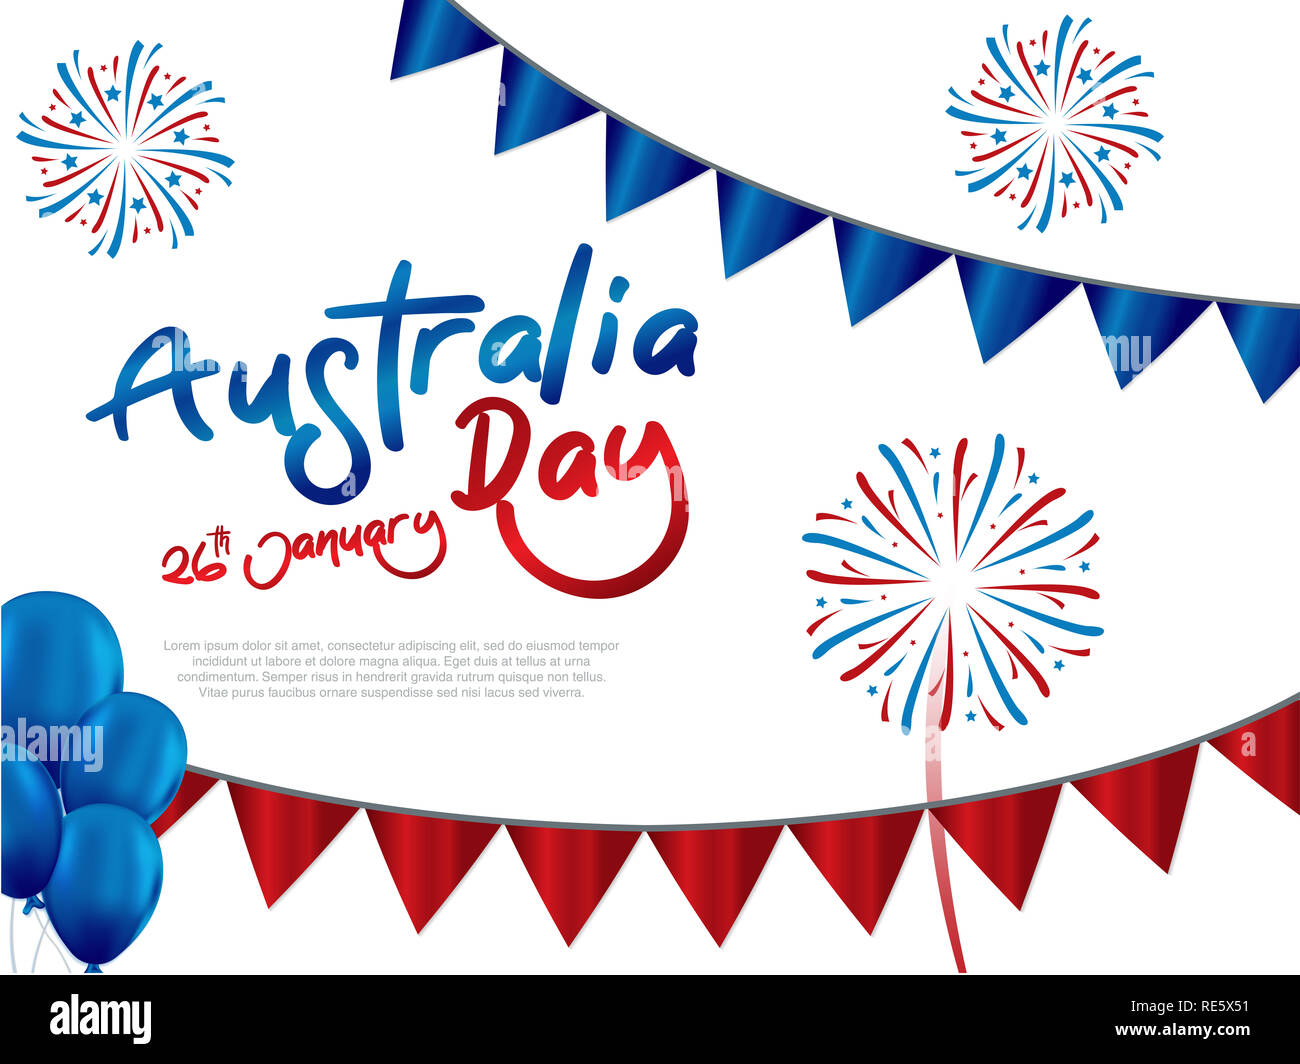 Map Of Australia 26th Parallel.Happy Australia Day Lettering Calligraphy Map Of Australia With